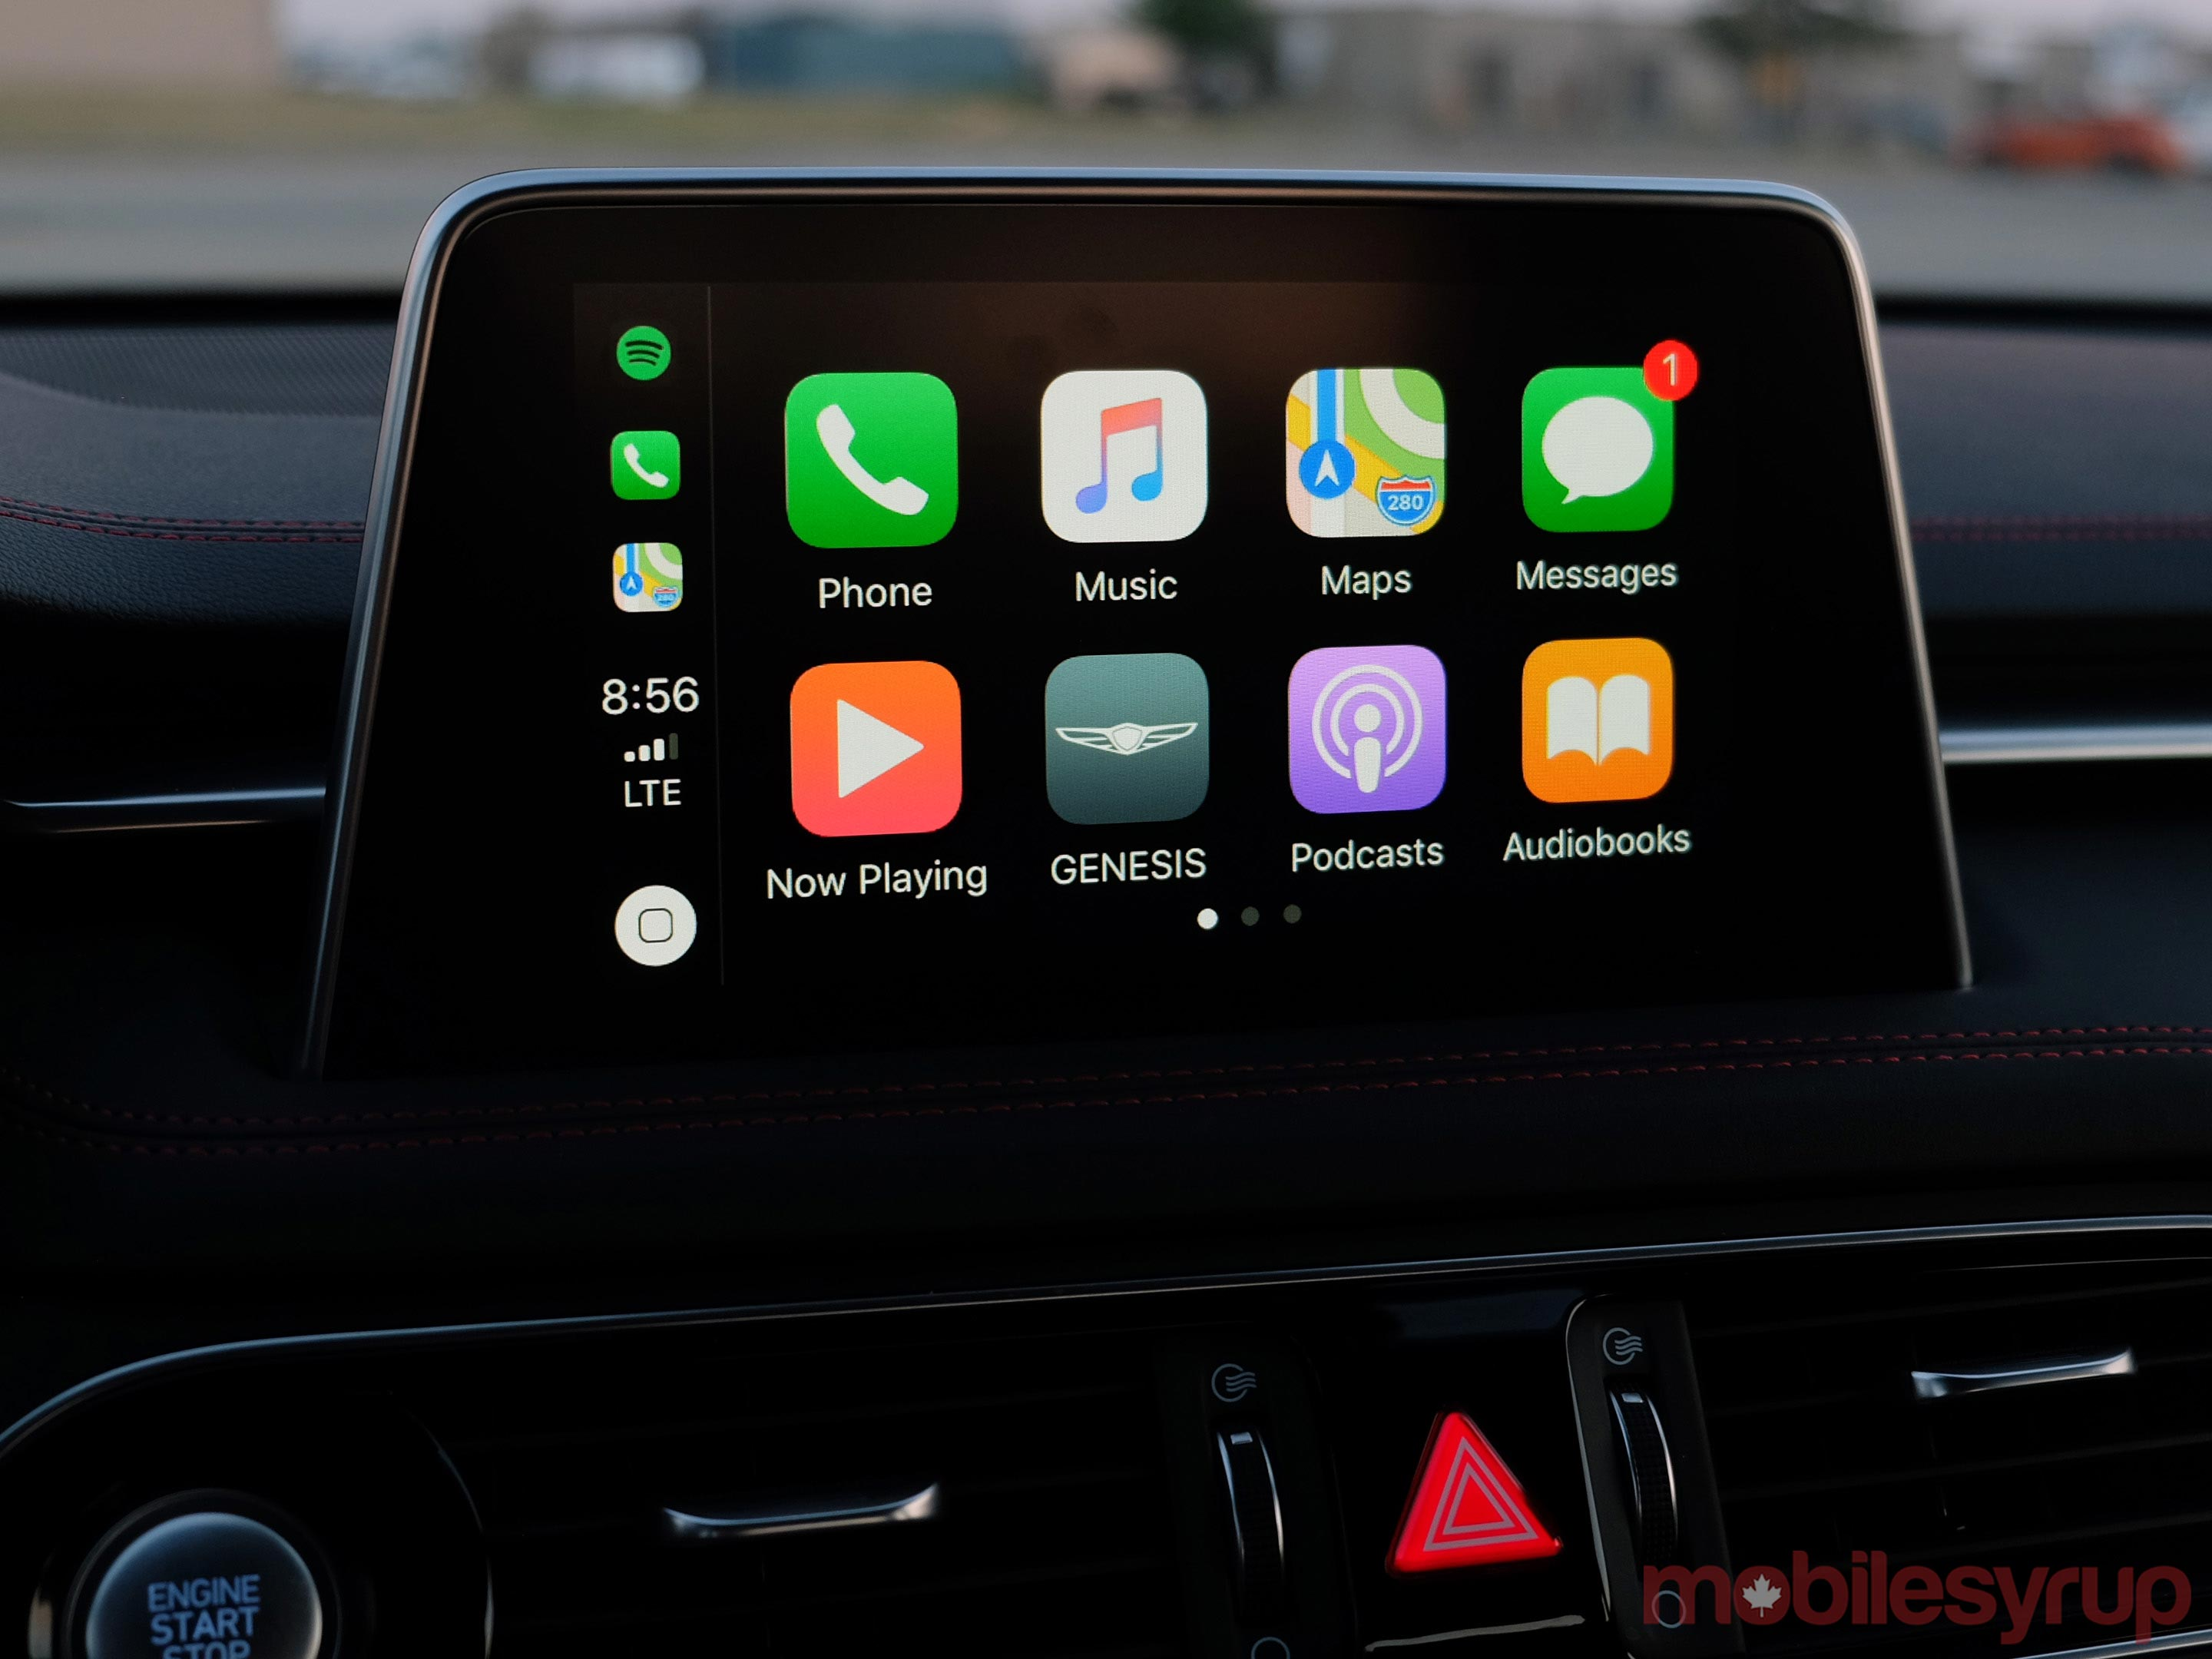 Hyundai Genesis G70 CarPlay